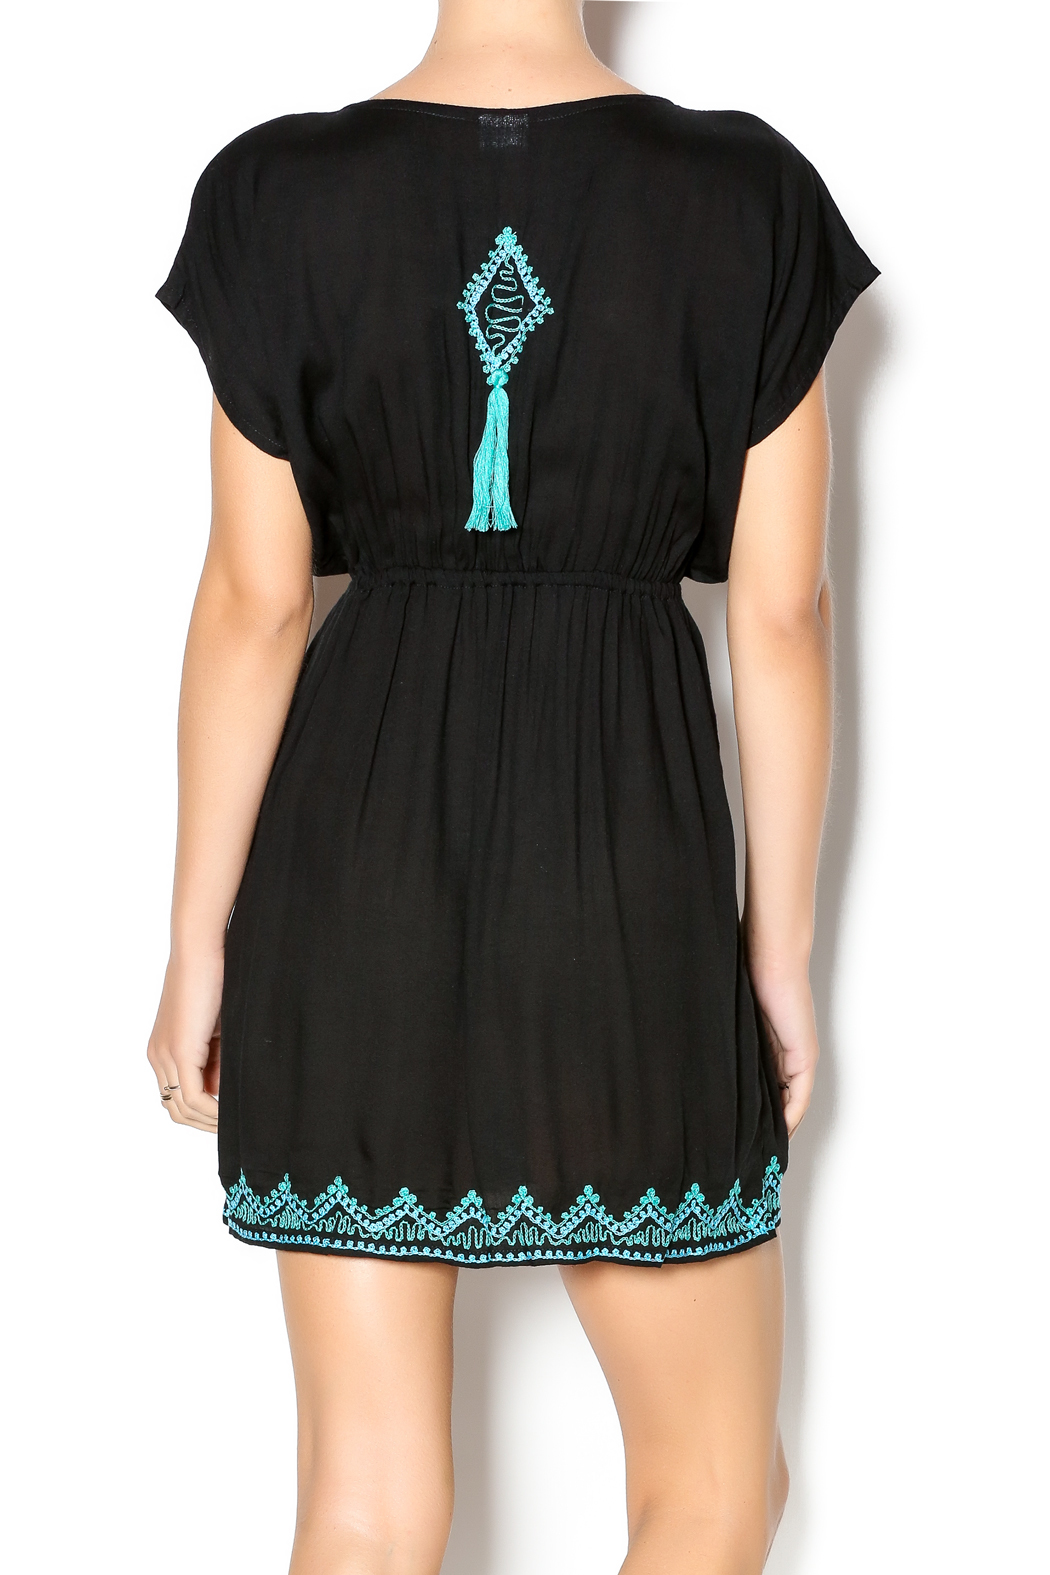 Kuta's One World Embroidered Ibiza Dress - Back Cropped Image